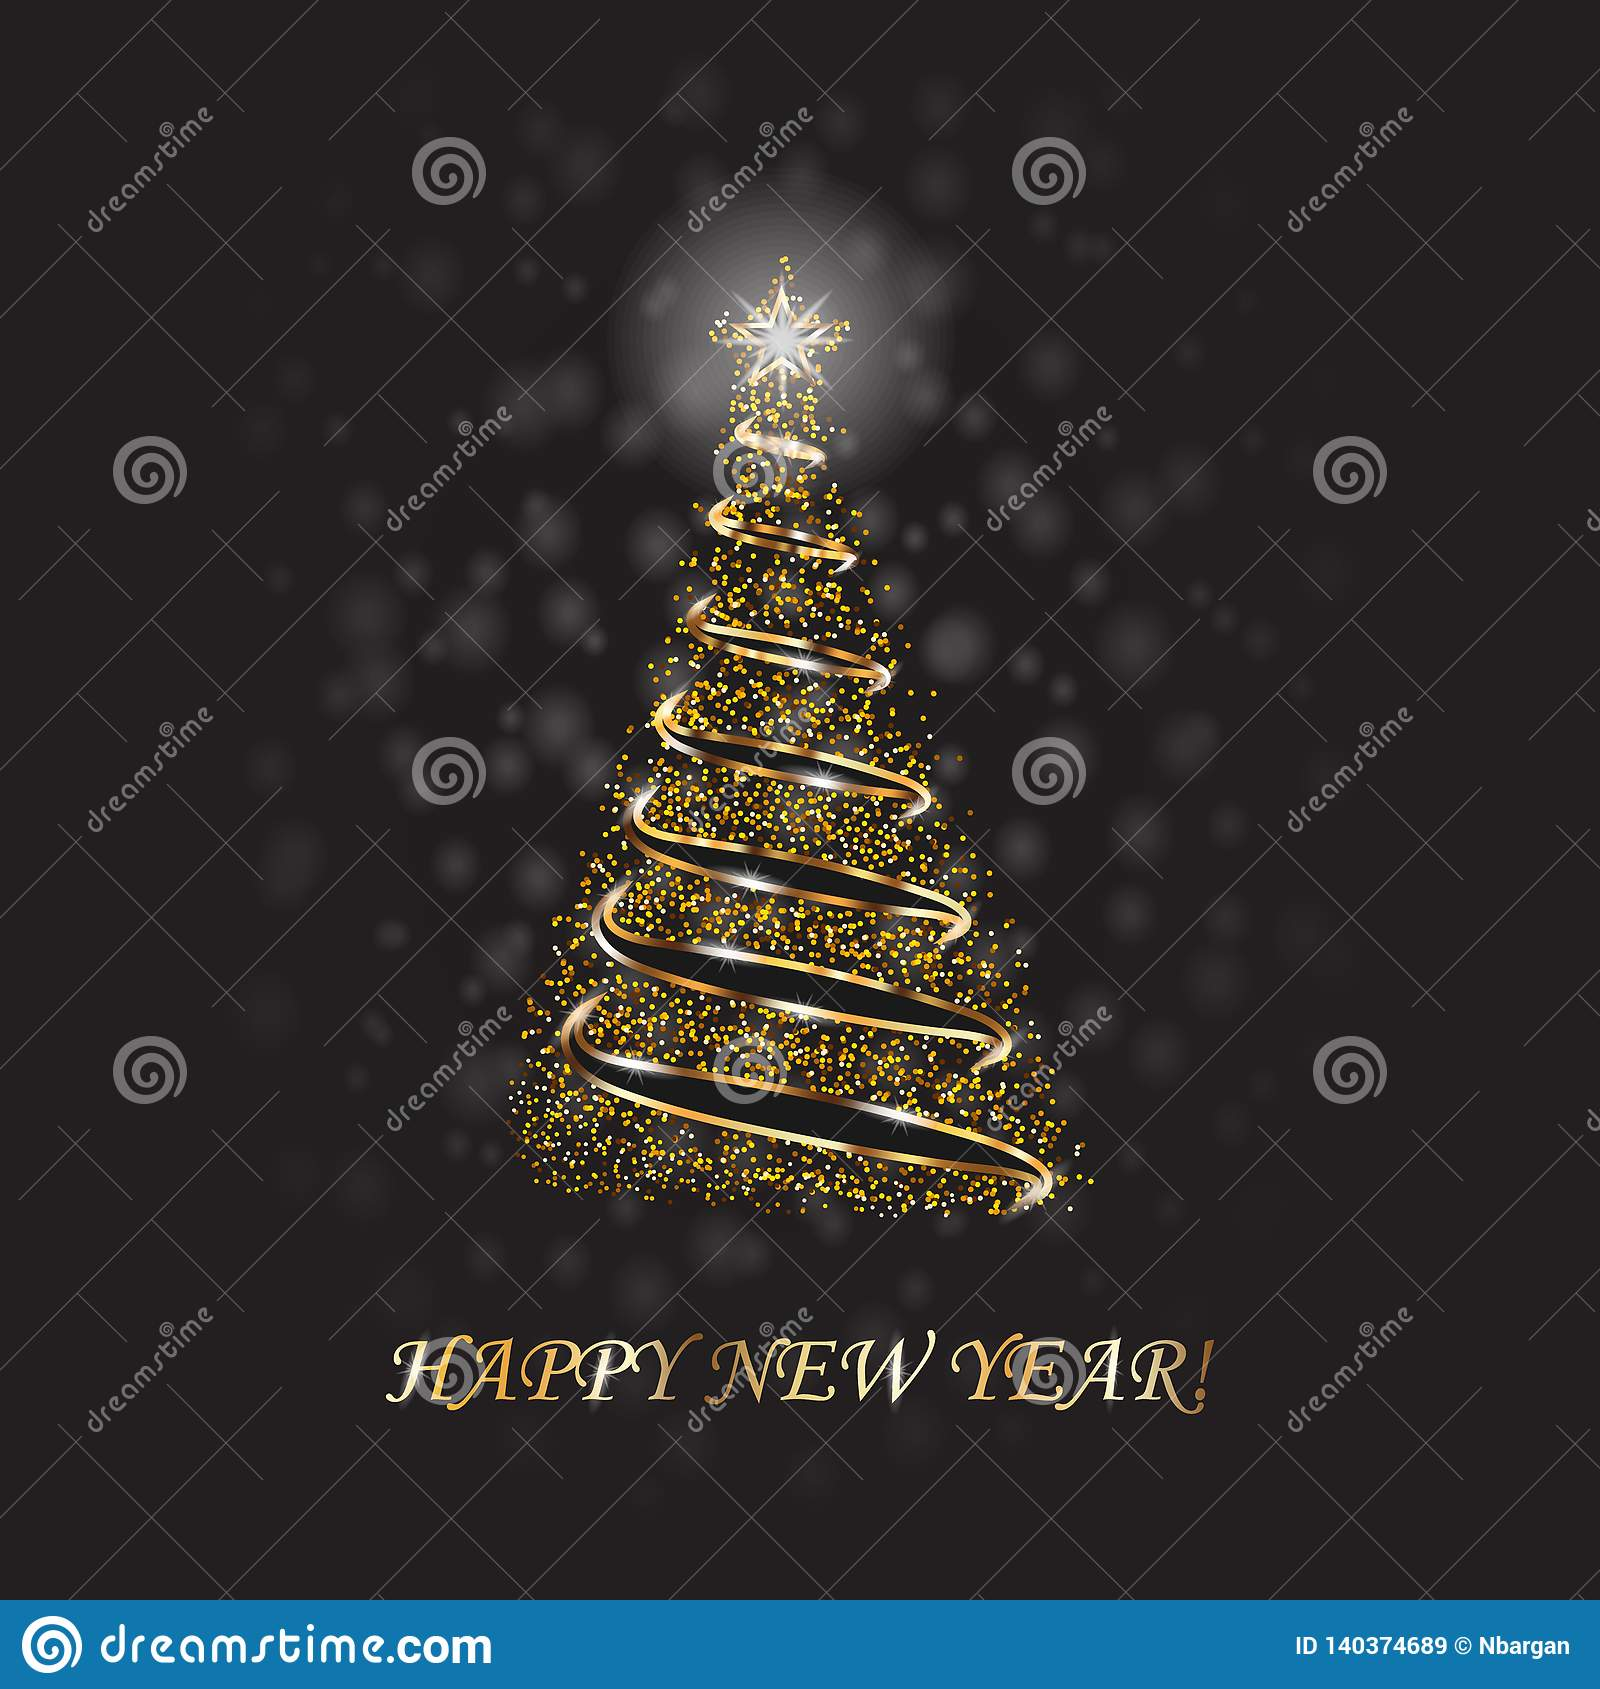 Gold Christmas Tree As Symbol Of Happy New Year, Merry ...